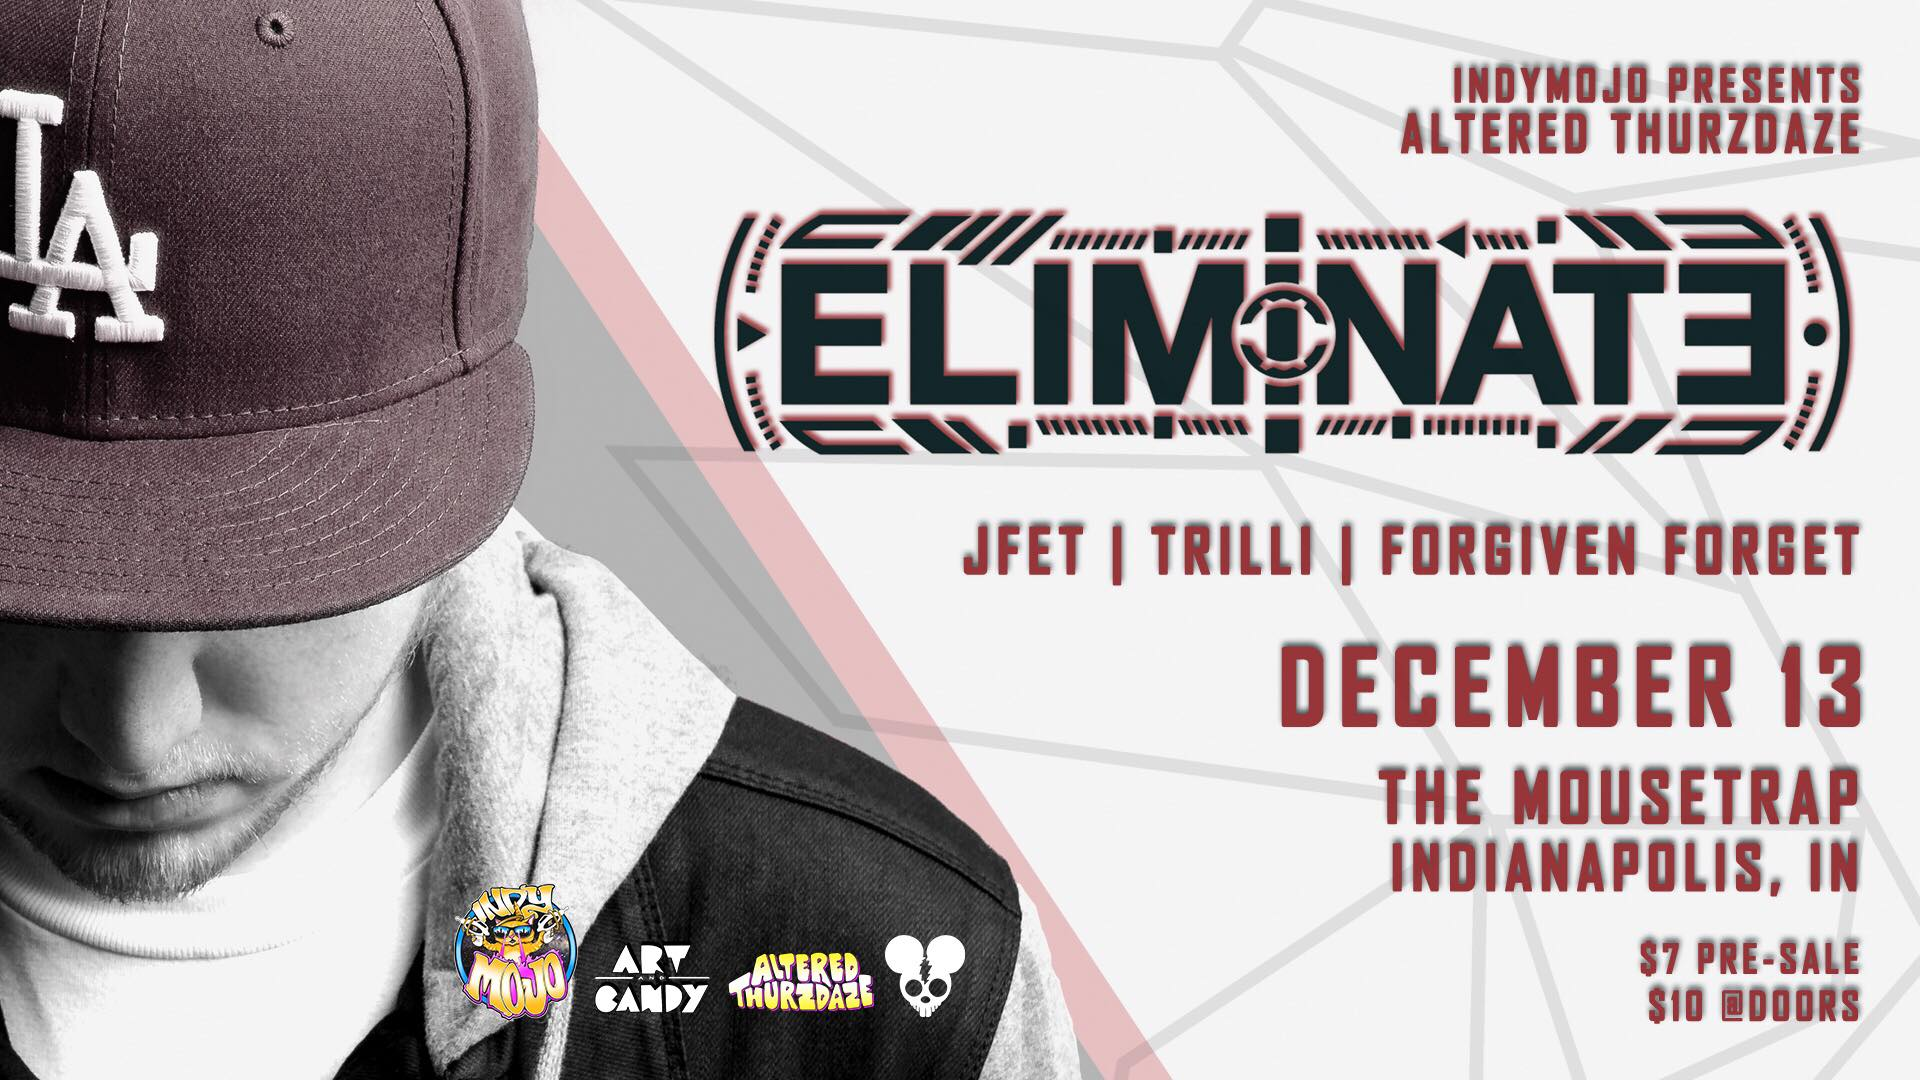 Altered Thurzdaze w/ Eliminate - Thursday, December 13th